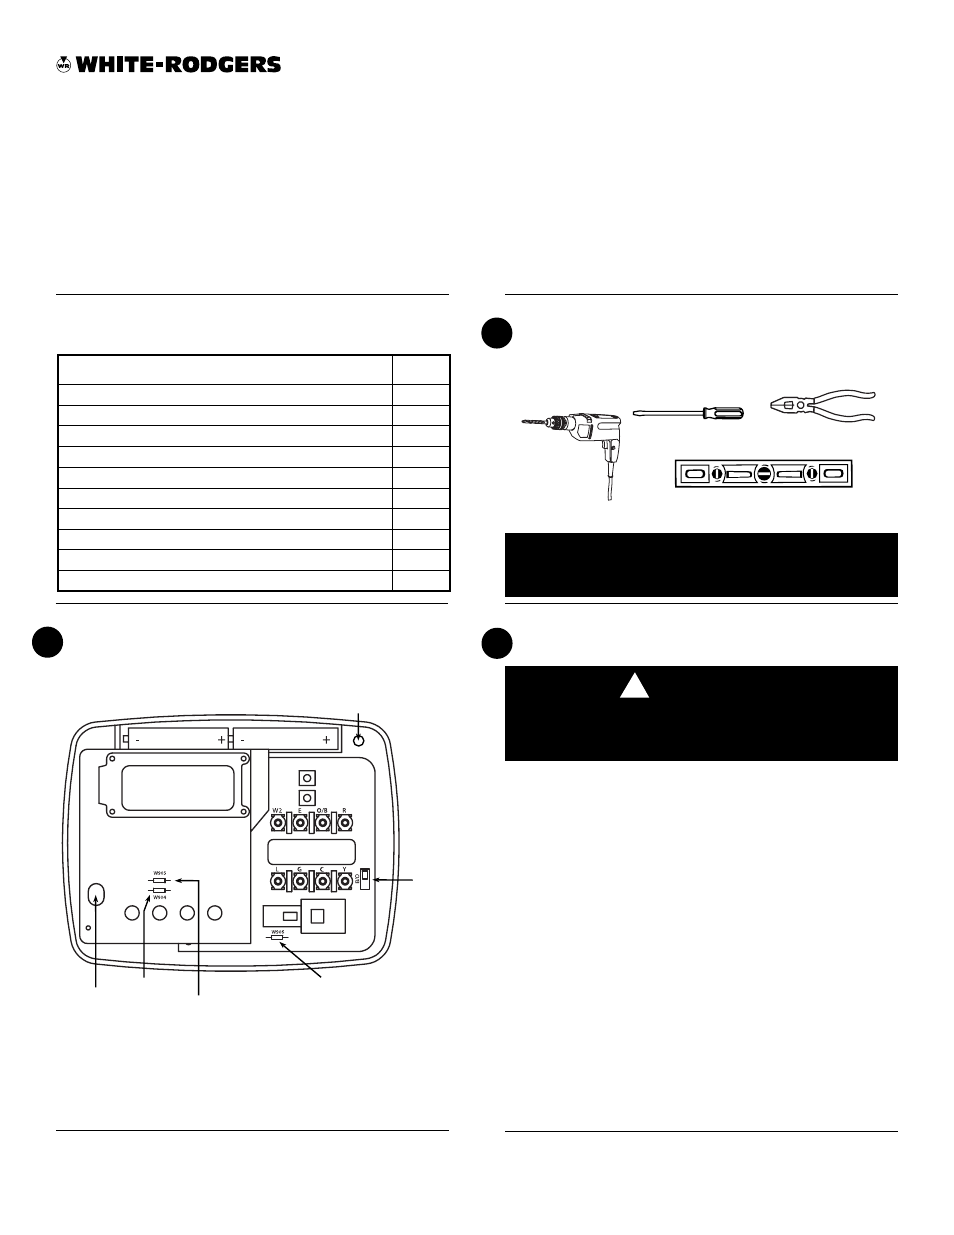 White Rodgers 1f79 User Manual